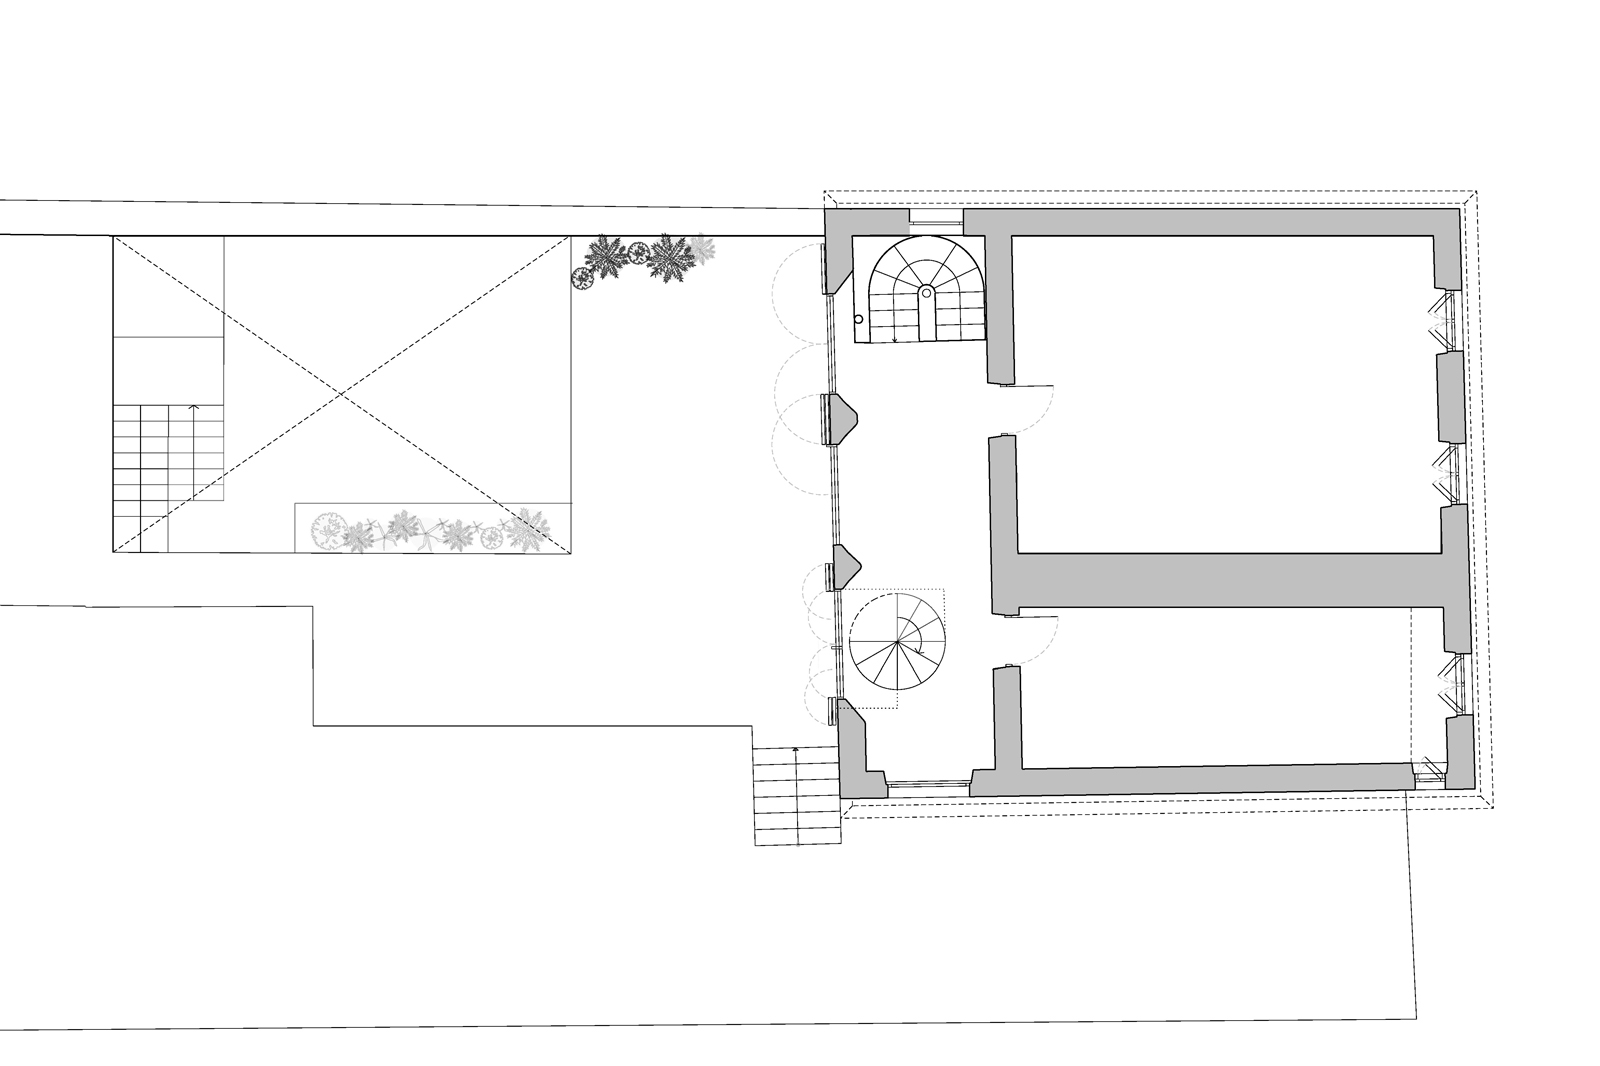 Transylvanian farmhouse, ground floor plan